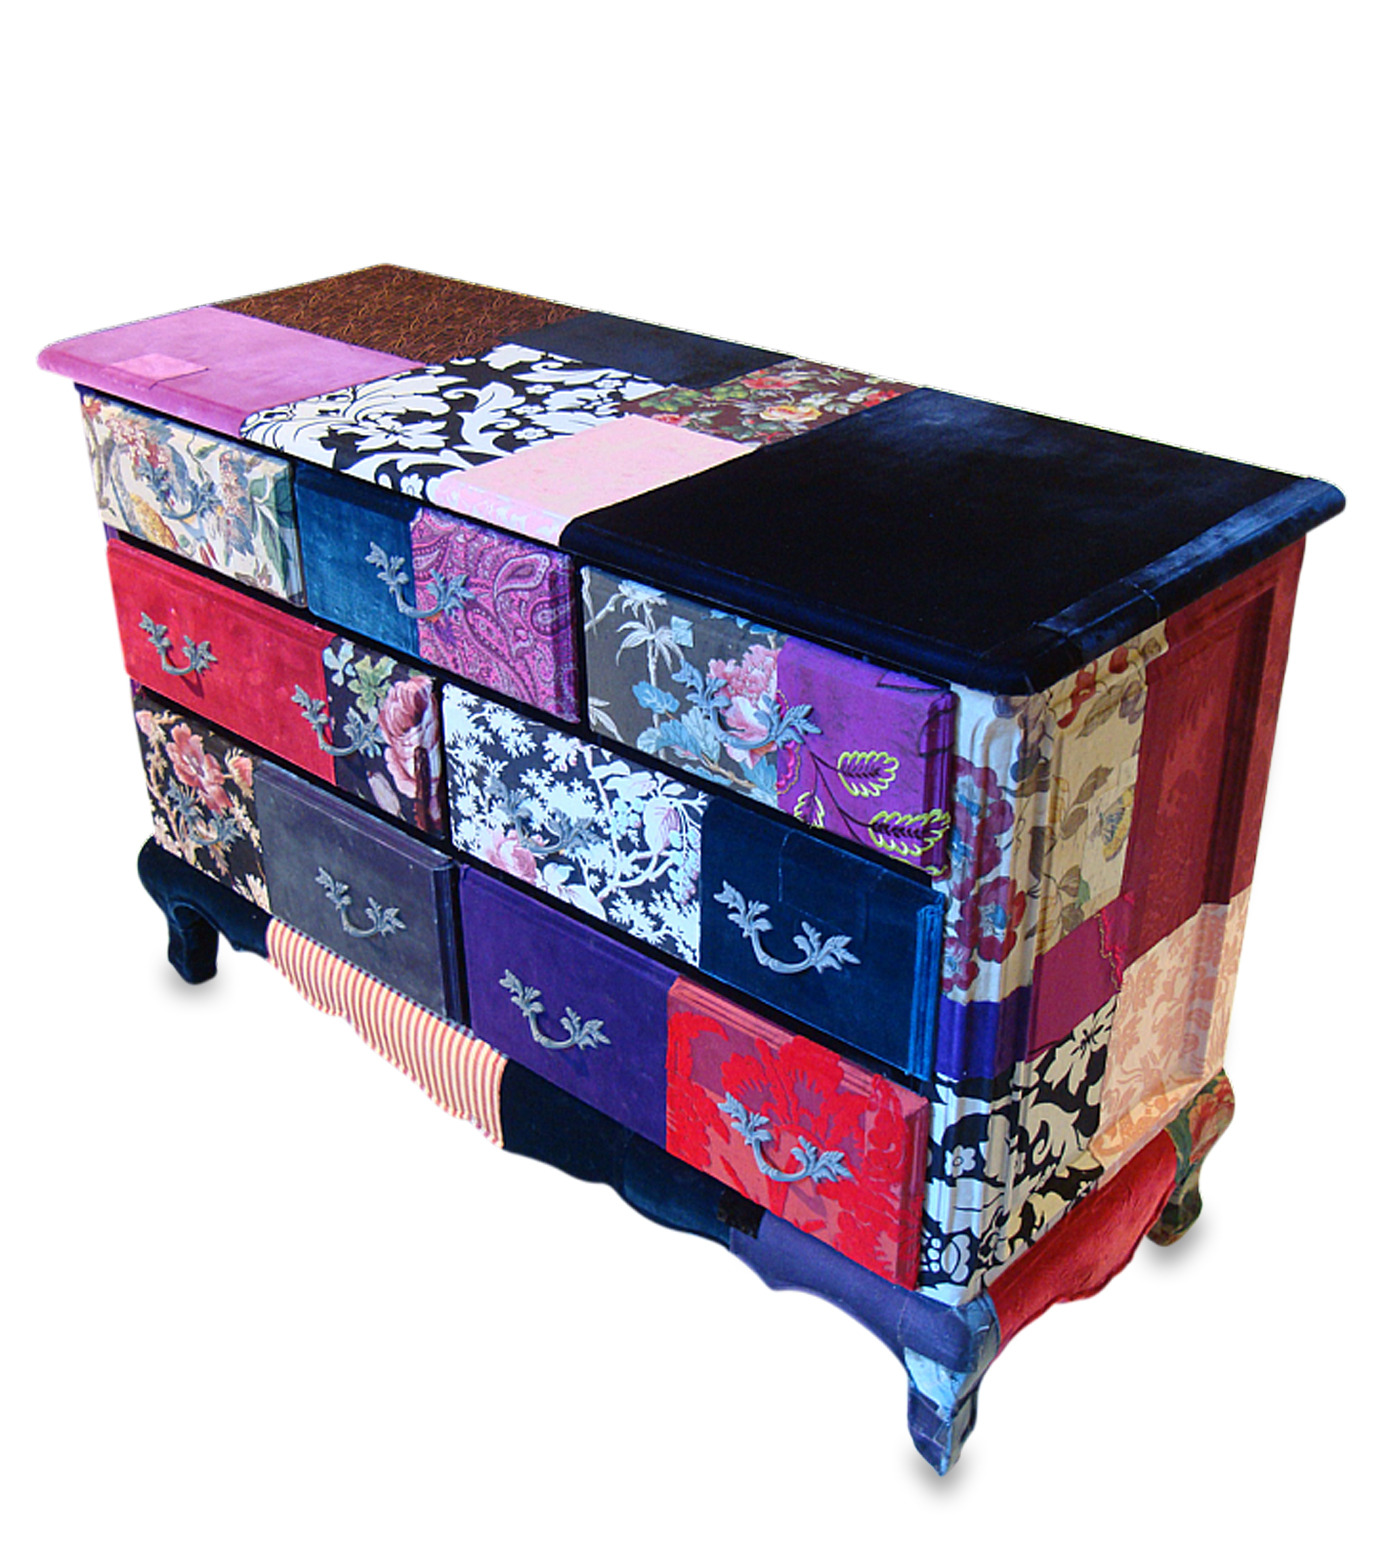 Squintlimited(スクイントリミテッド)の7 Drawer chest-NONE-2-0 拡大詳細画像2